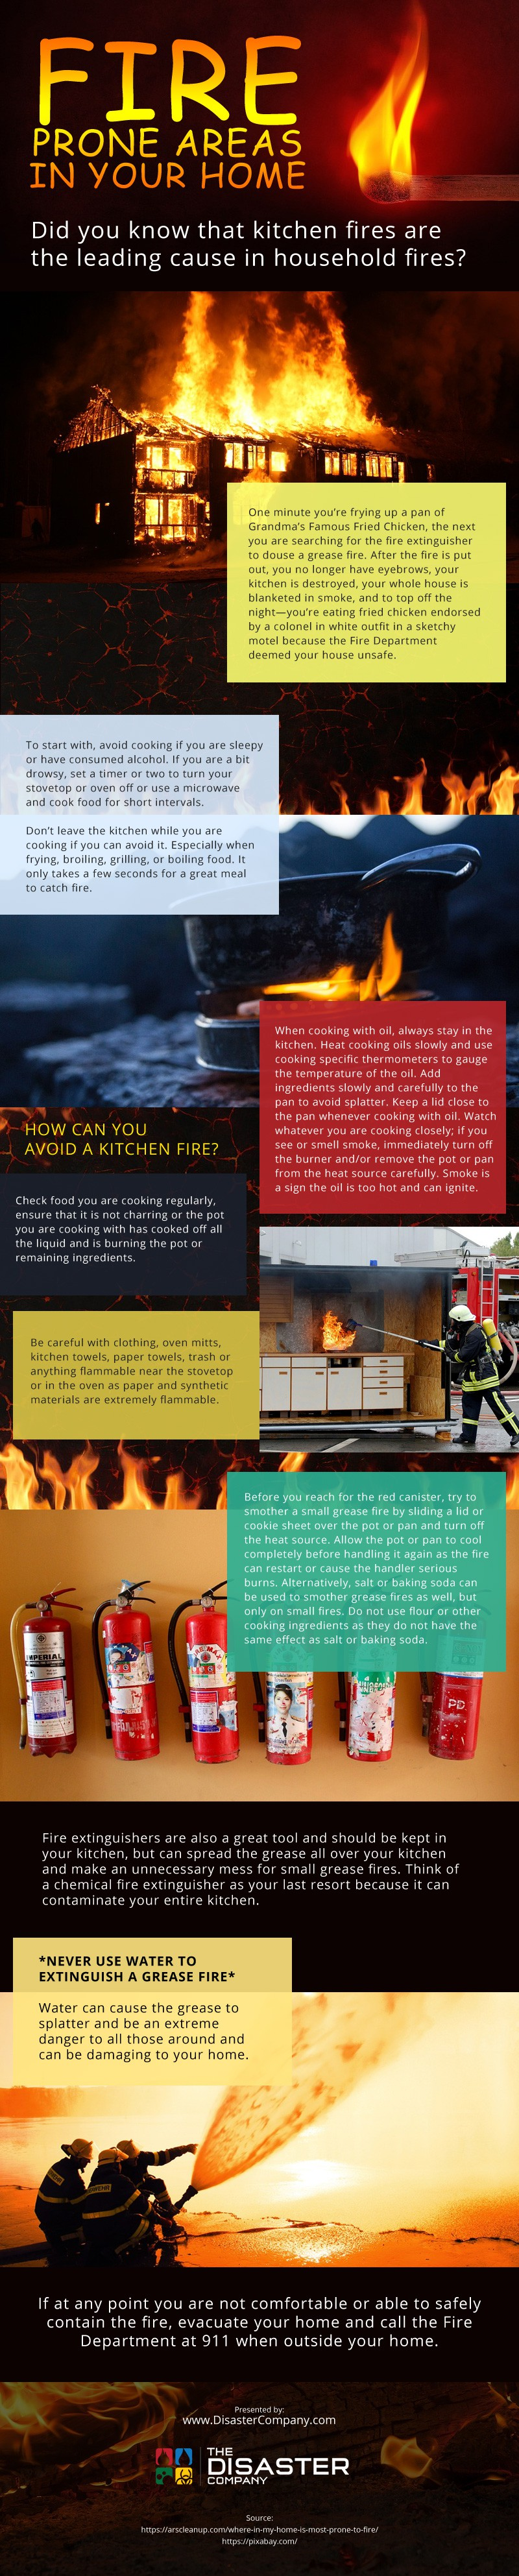 Fire-Prone-Areas-in-Home Infographic